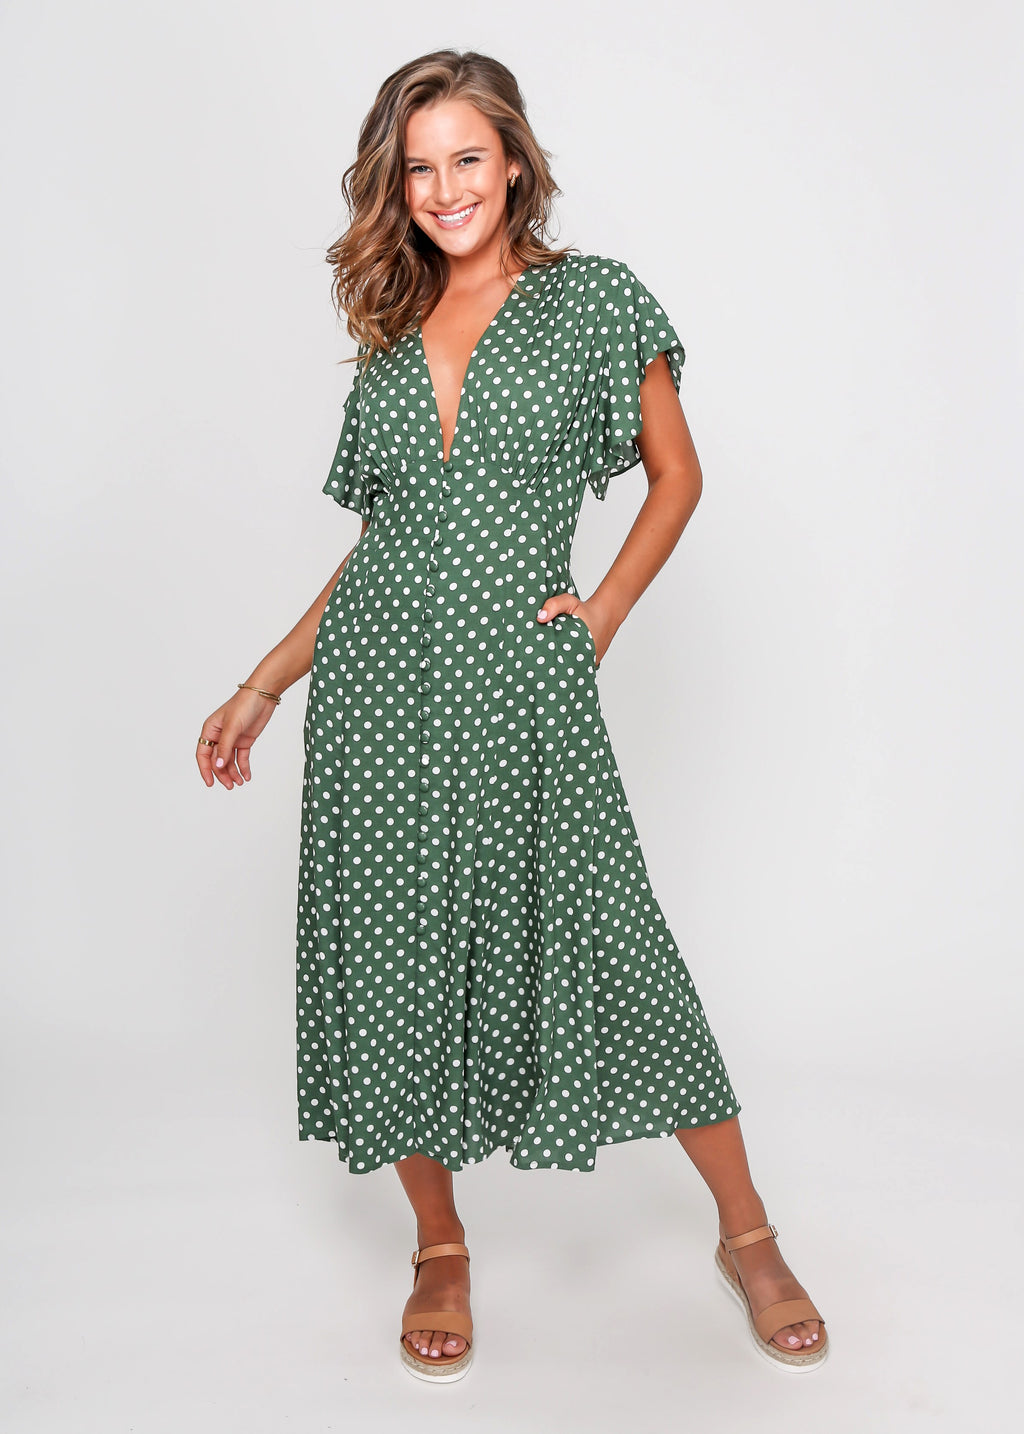 MIRANDA DRESS - GREEN DOT